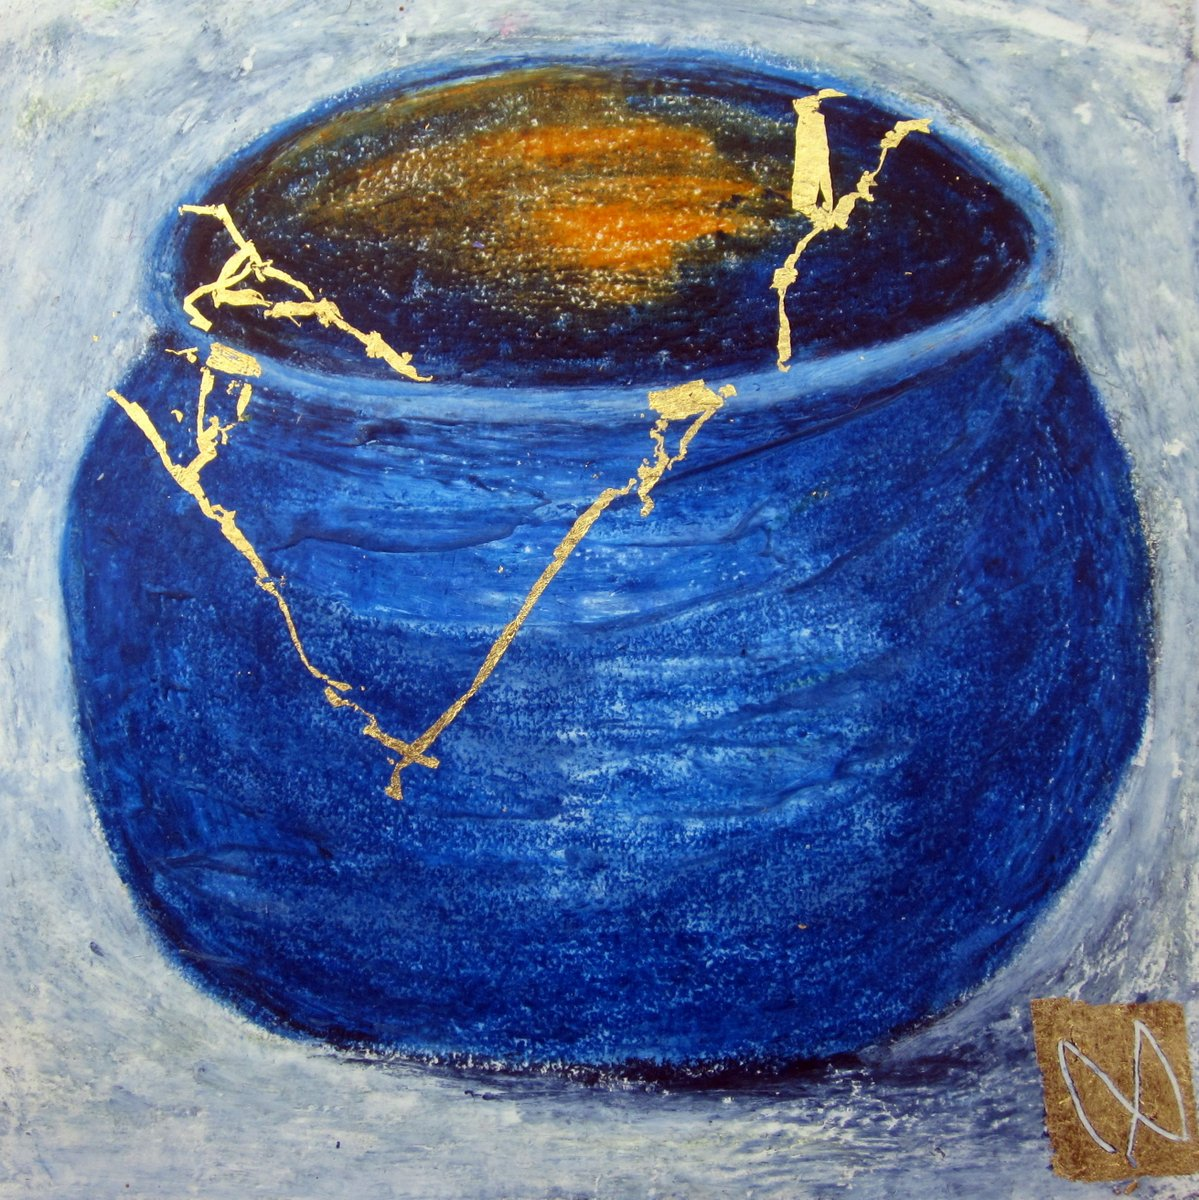 painting of Japanese kintsugi tea bowl with gold by Irish artist blue orange